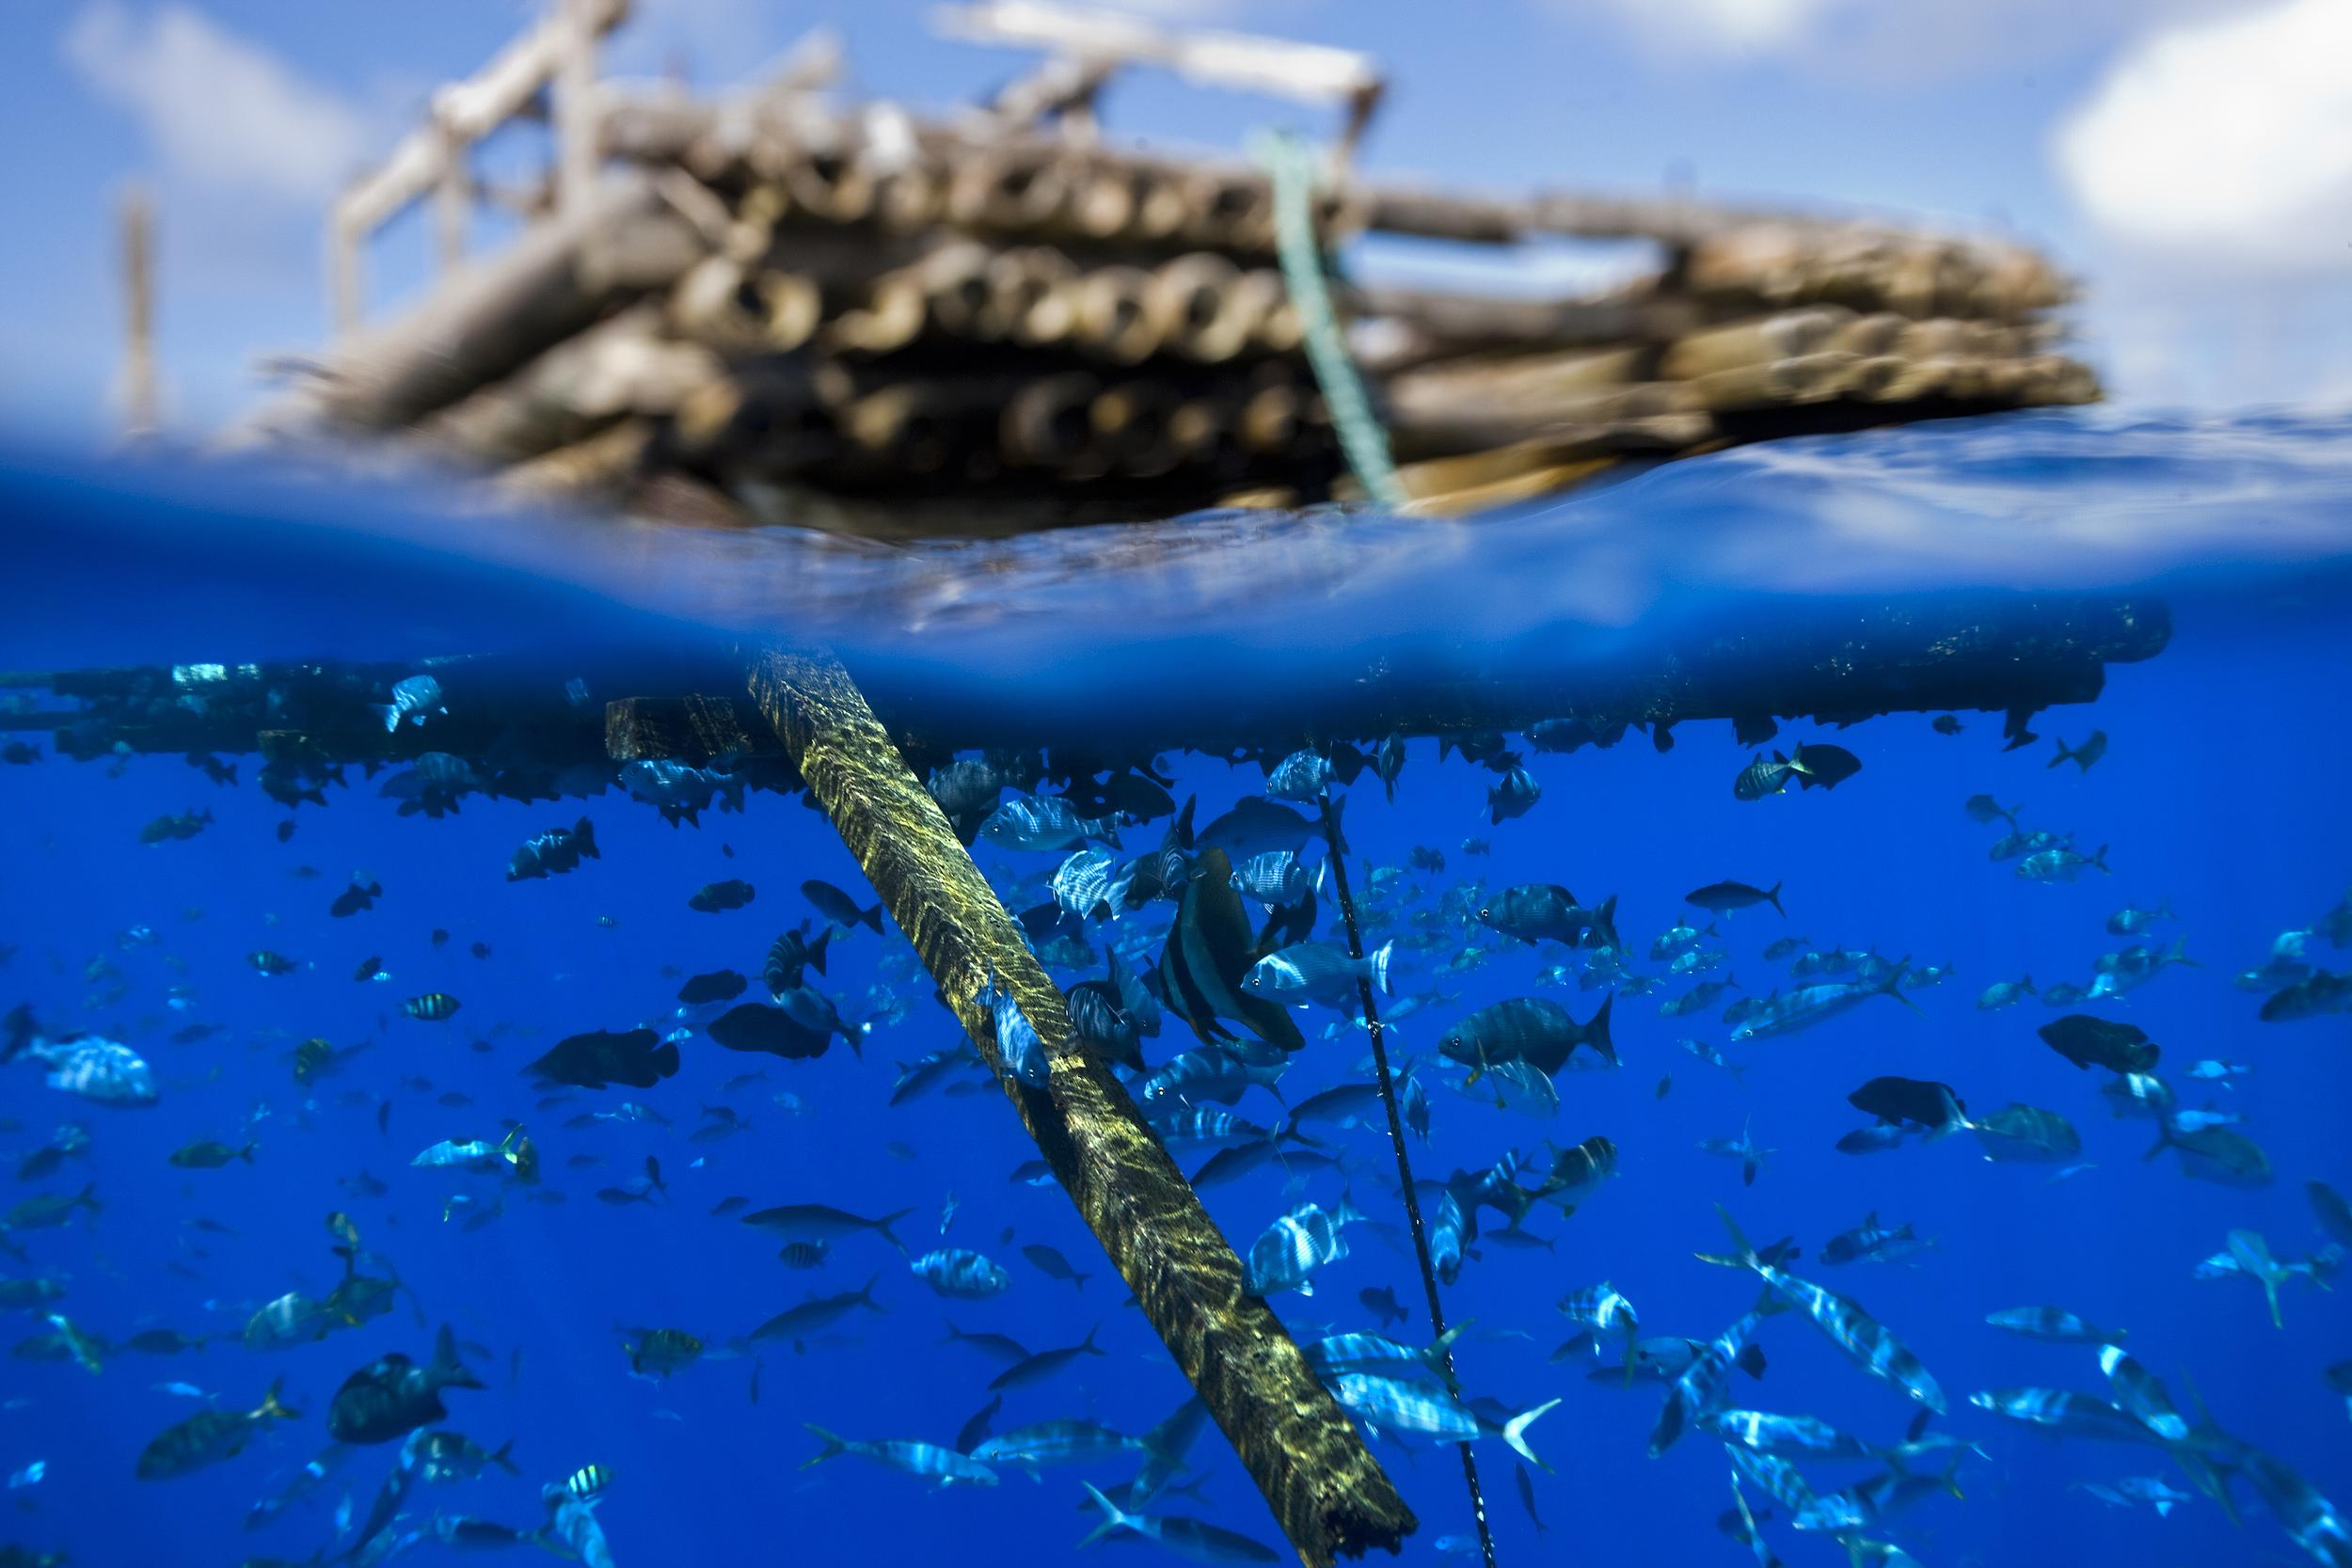 underwater shot of fish aggregation device